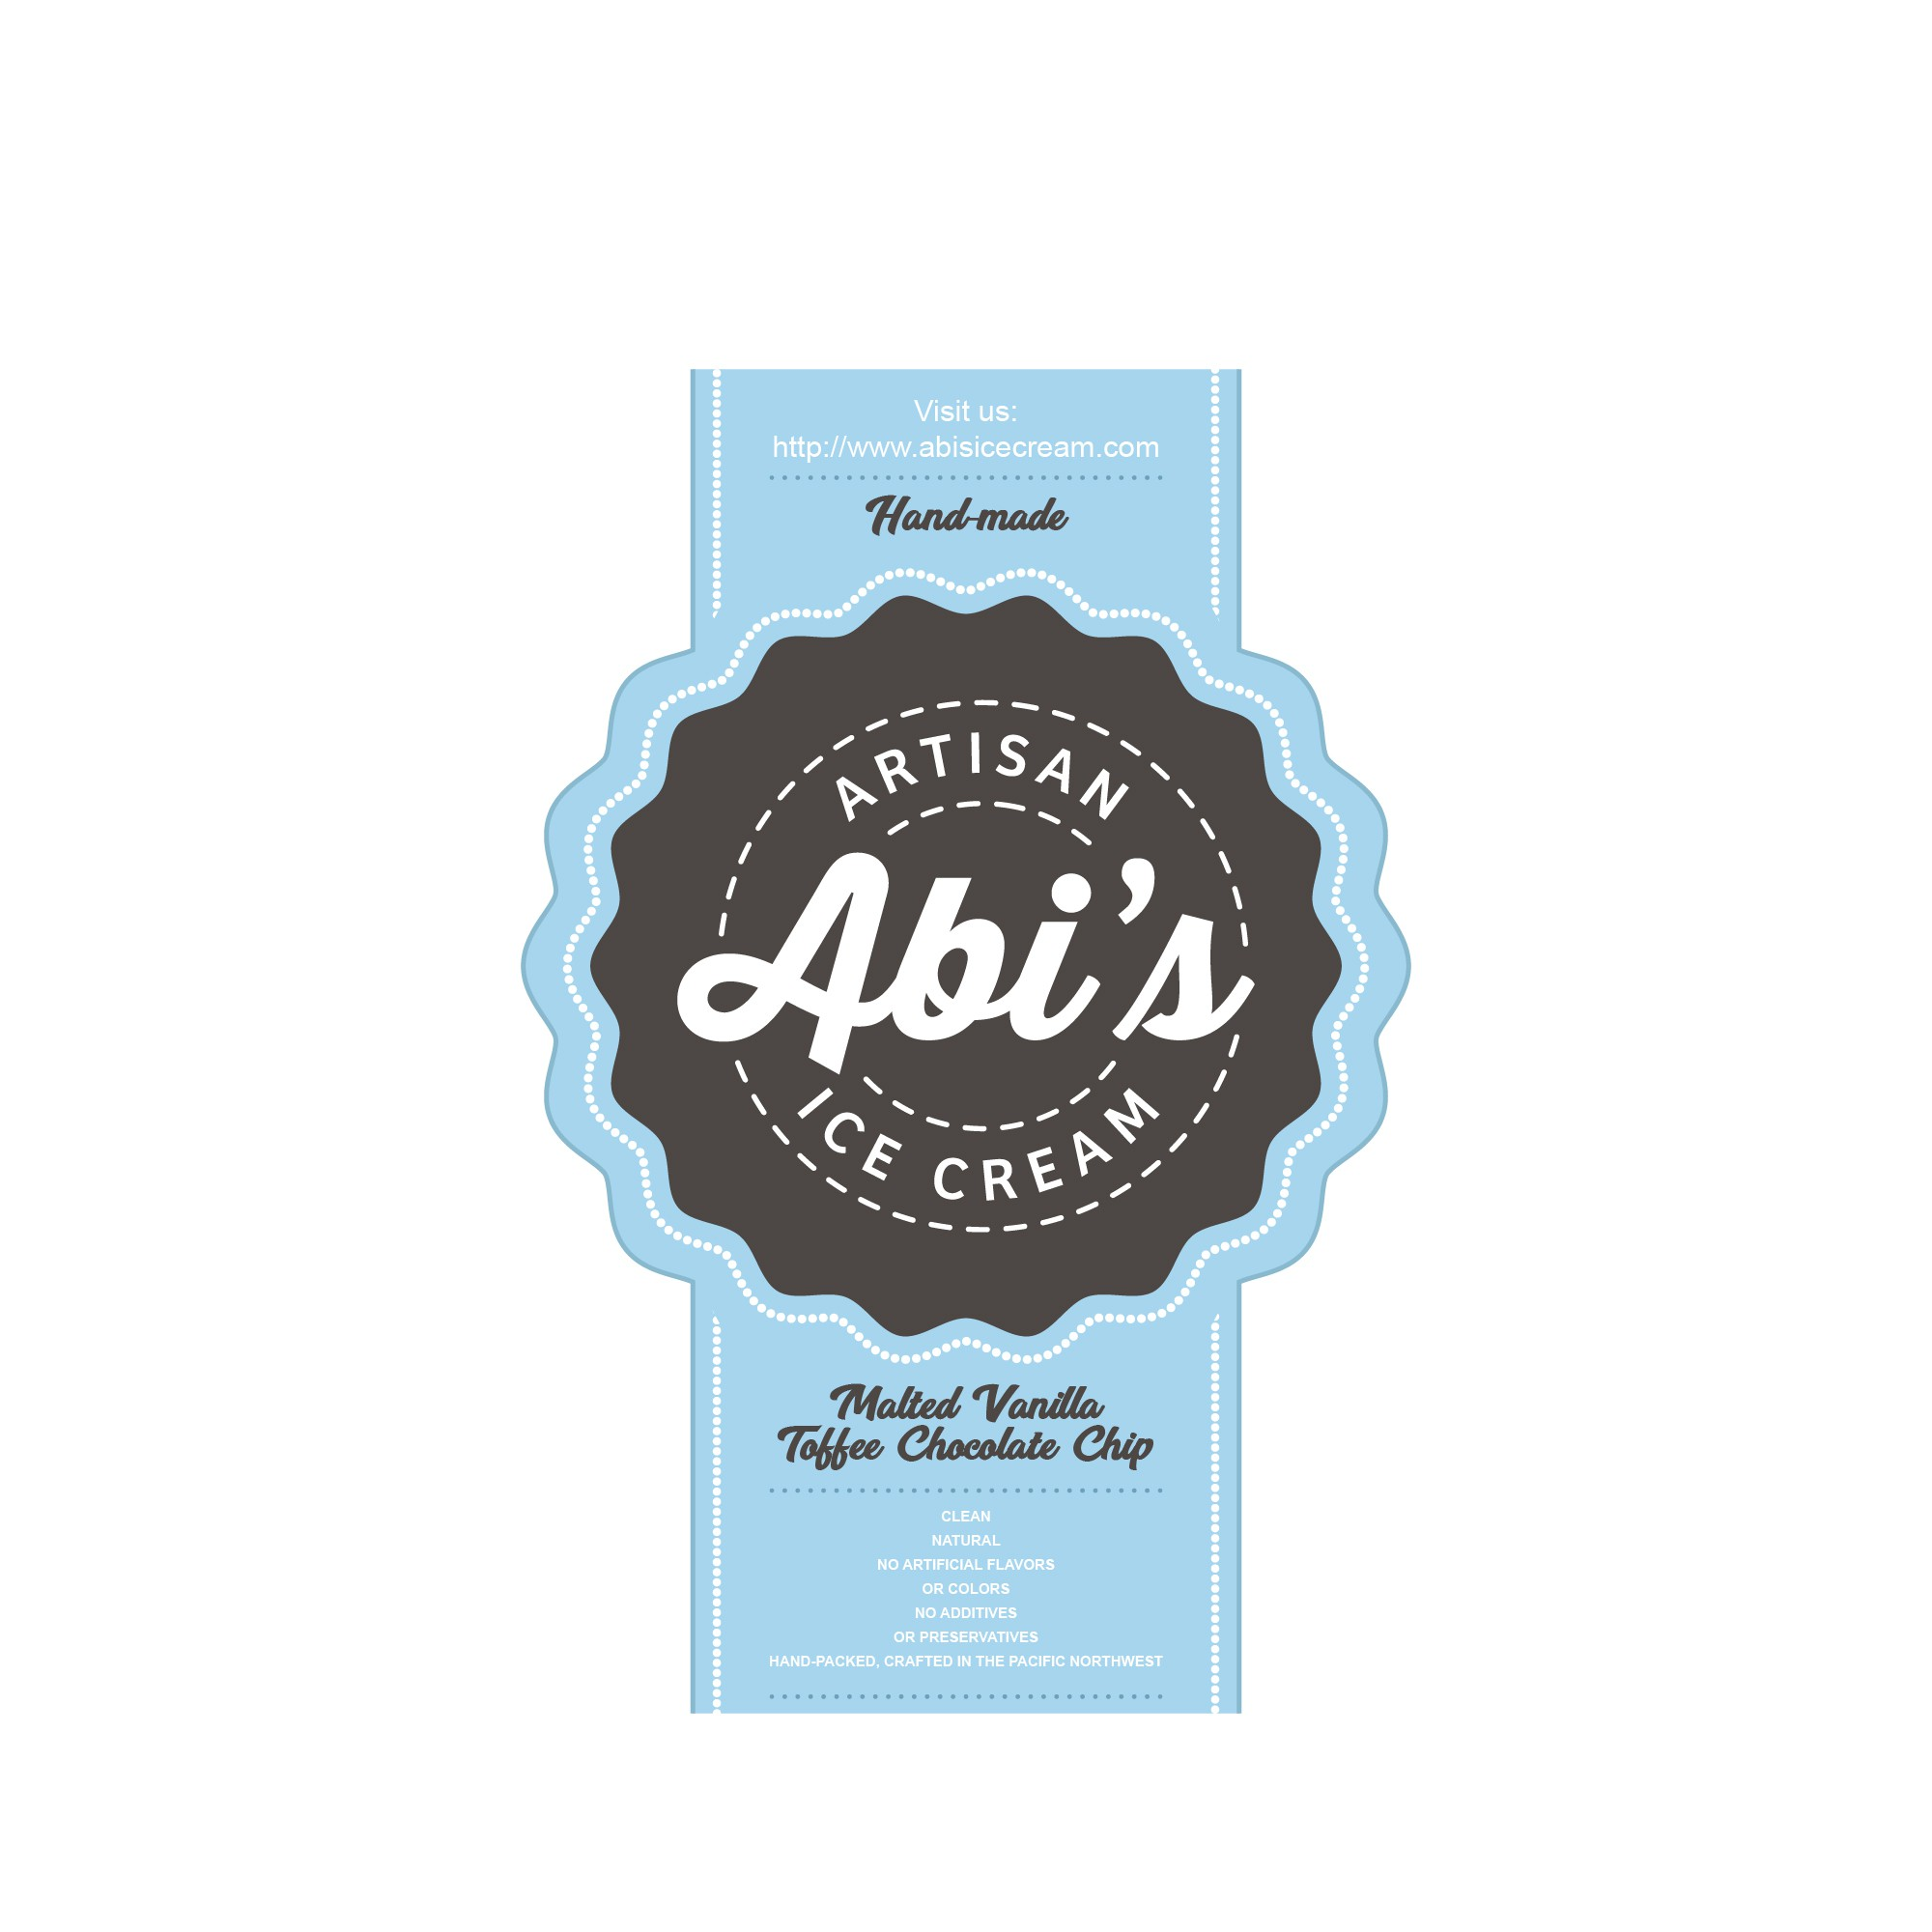 Abi's Ice Cream - Hip & Modern Ice Cream Pint Food Label Contest